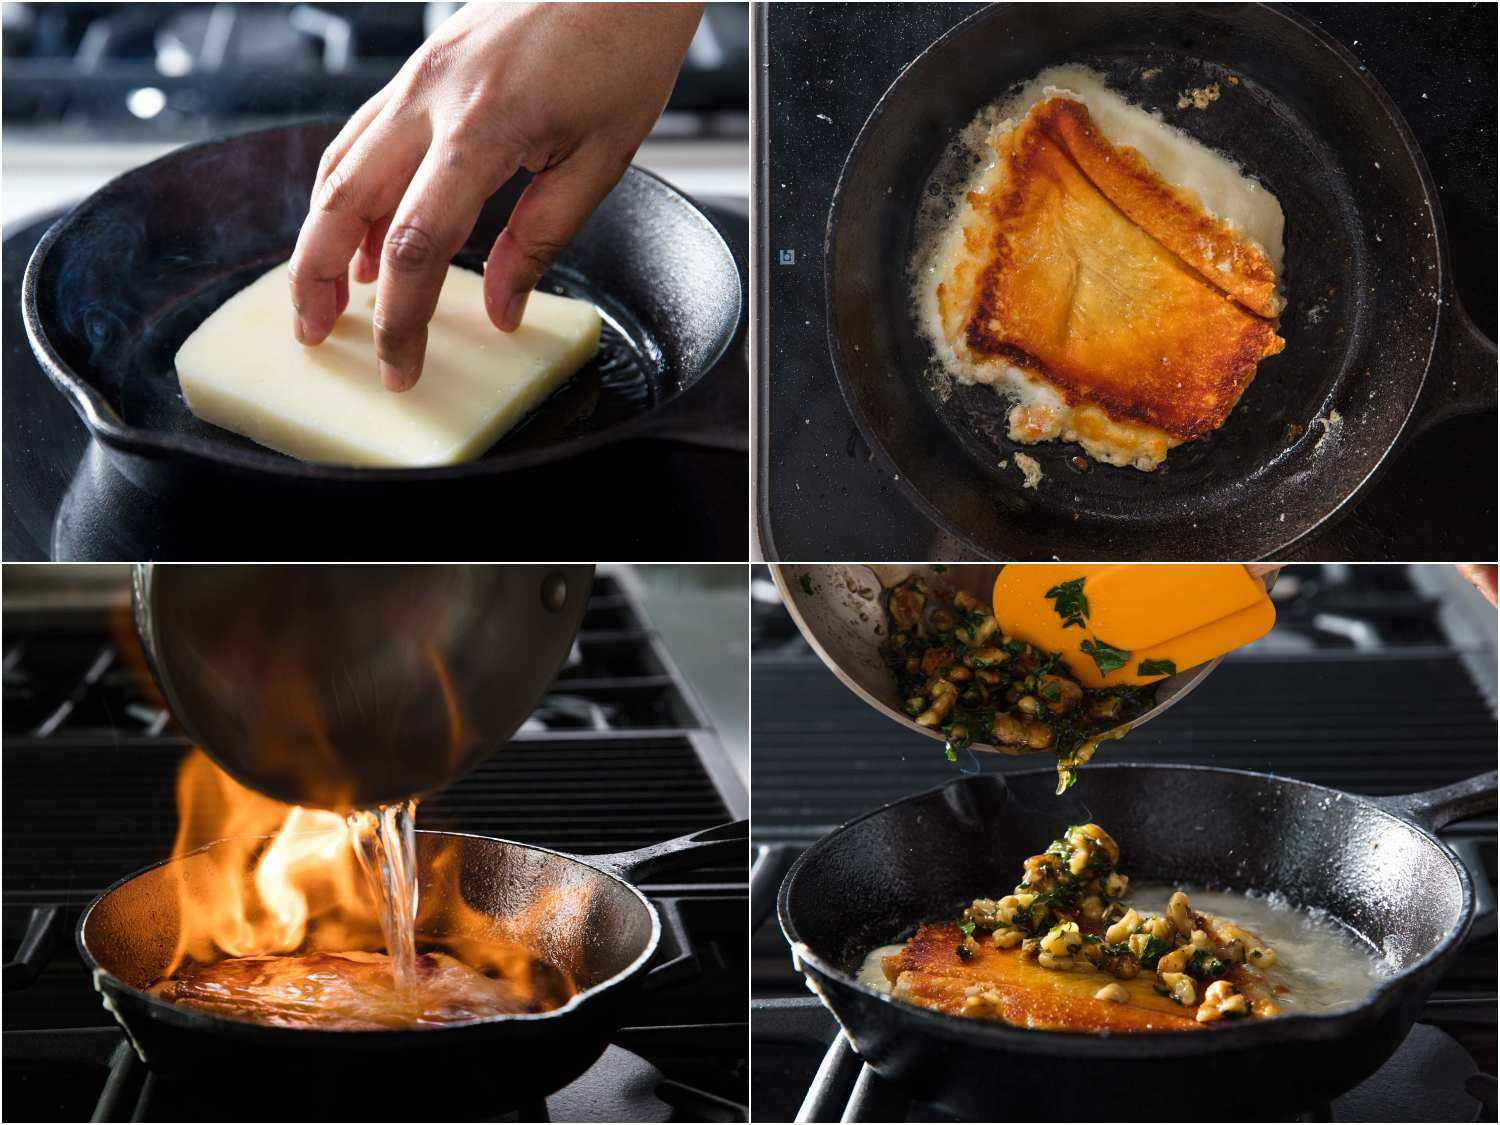 Pan frying cheese in a cast iron, pouring over flaming liquor, finishing with walnut vinaigrette